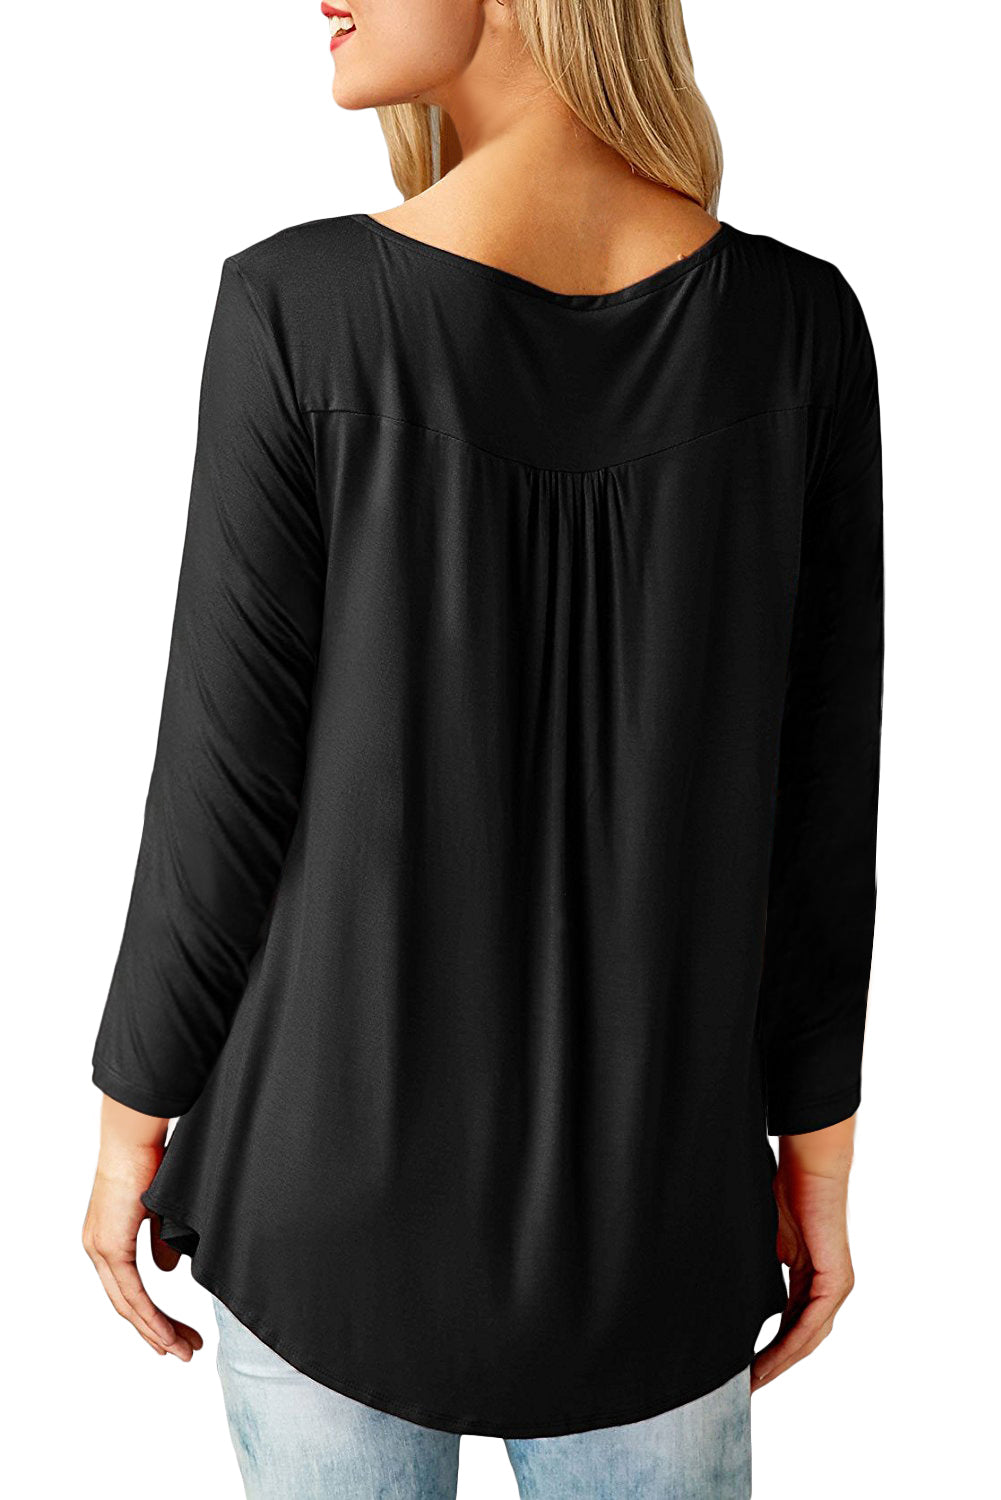 Black Long Sleeve Button up Pleated Tunic